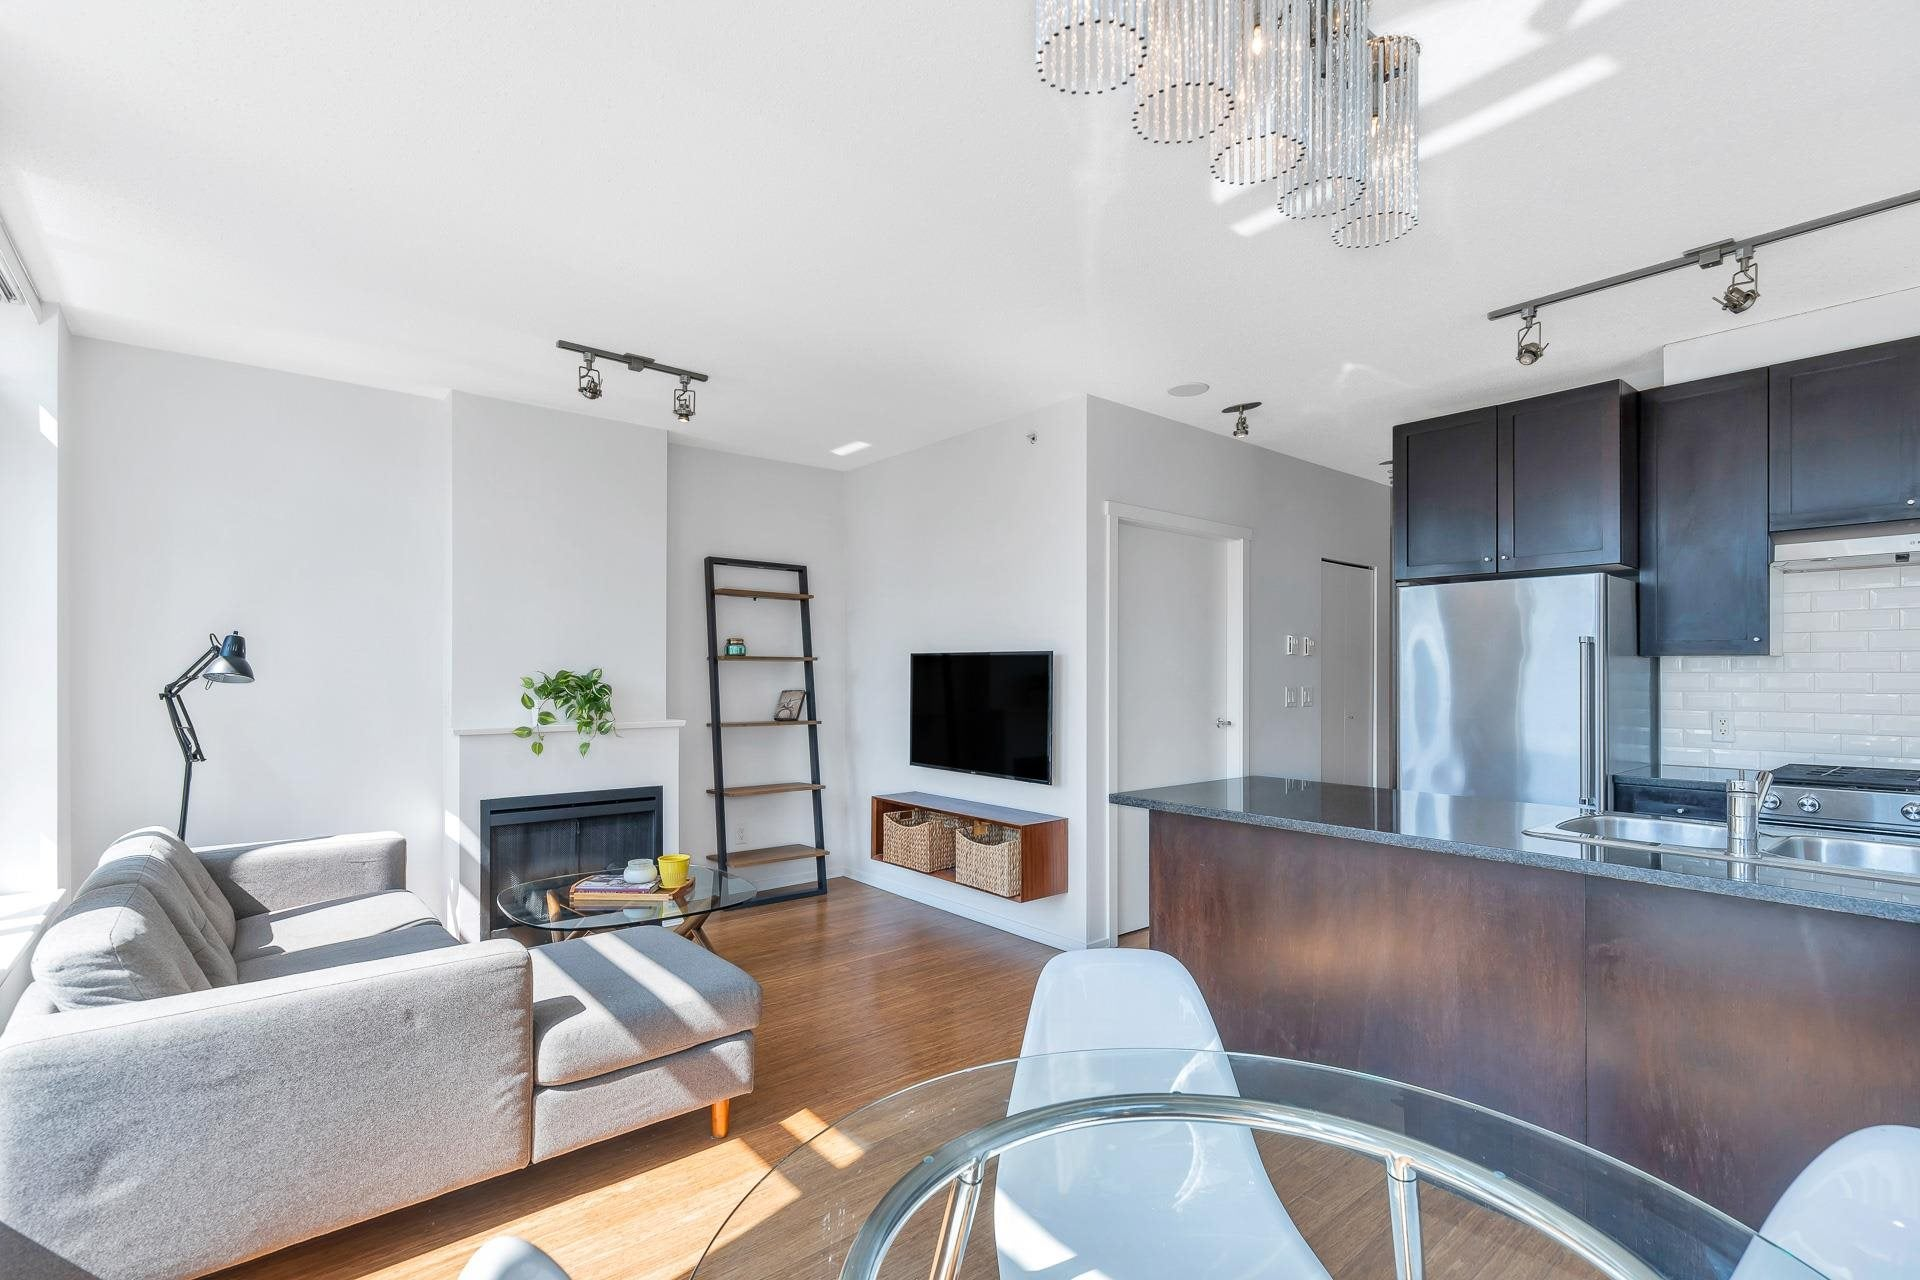 803 1001 HOMER STREET - Yaletown Apartment/Condo for sale, 2 Bedrooms (R2601799) - #1